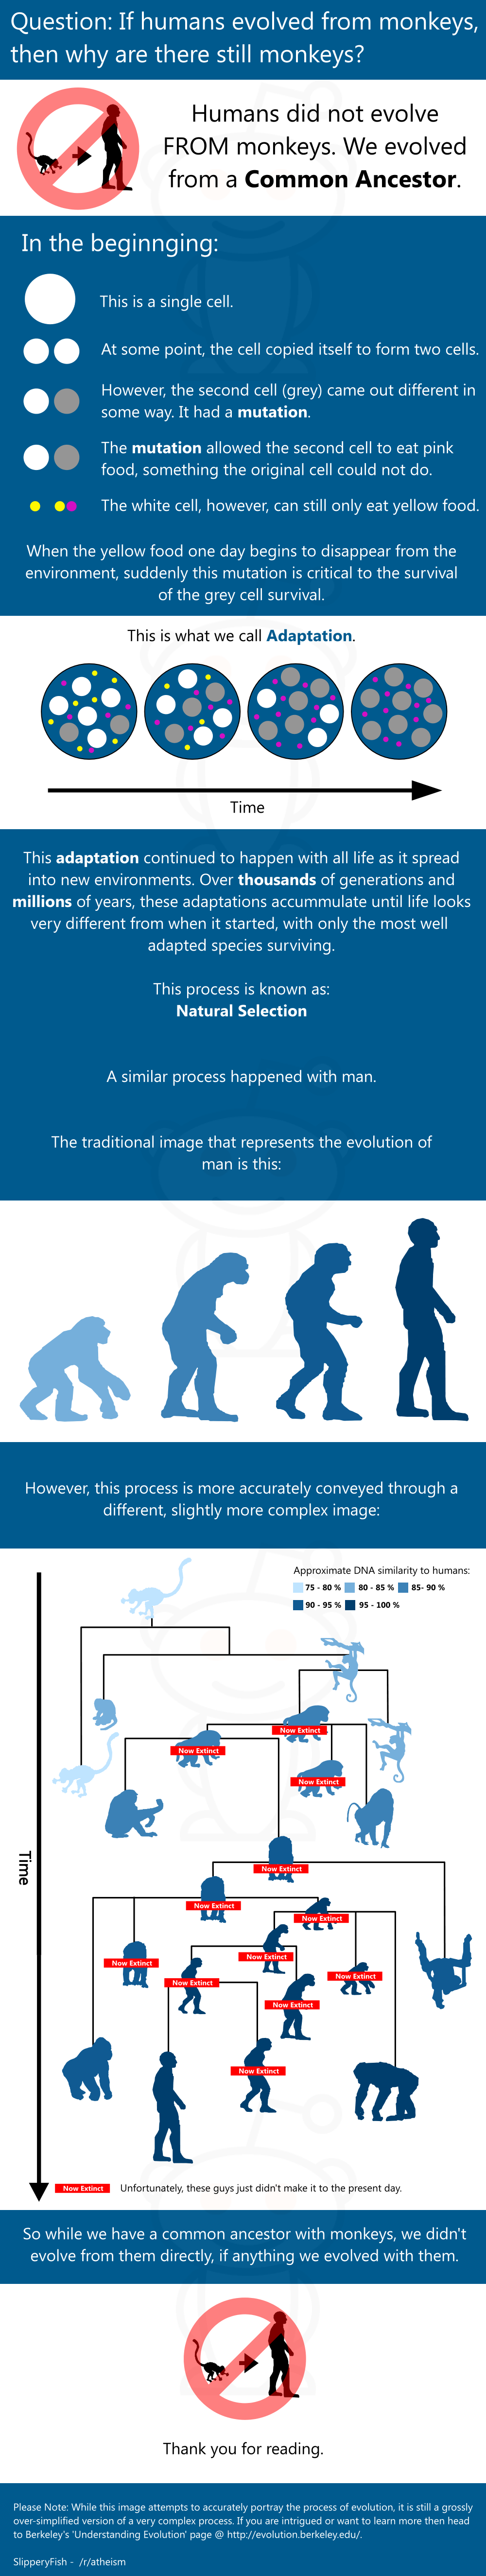 understanding how human being are evolving